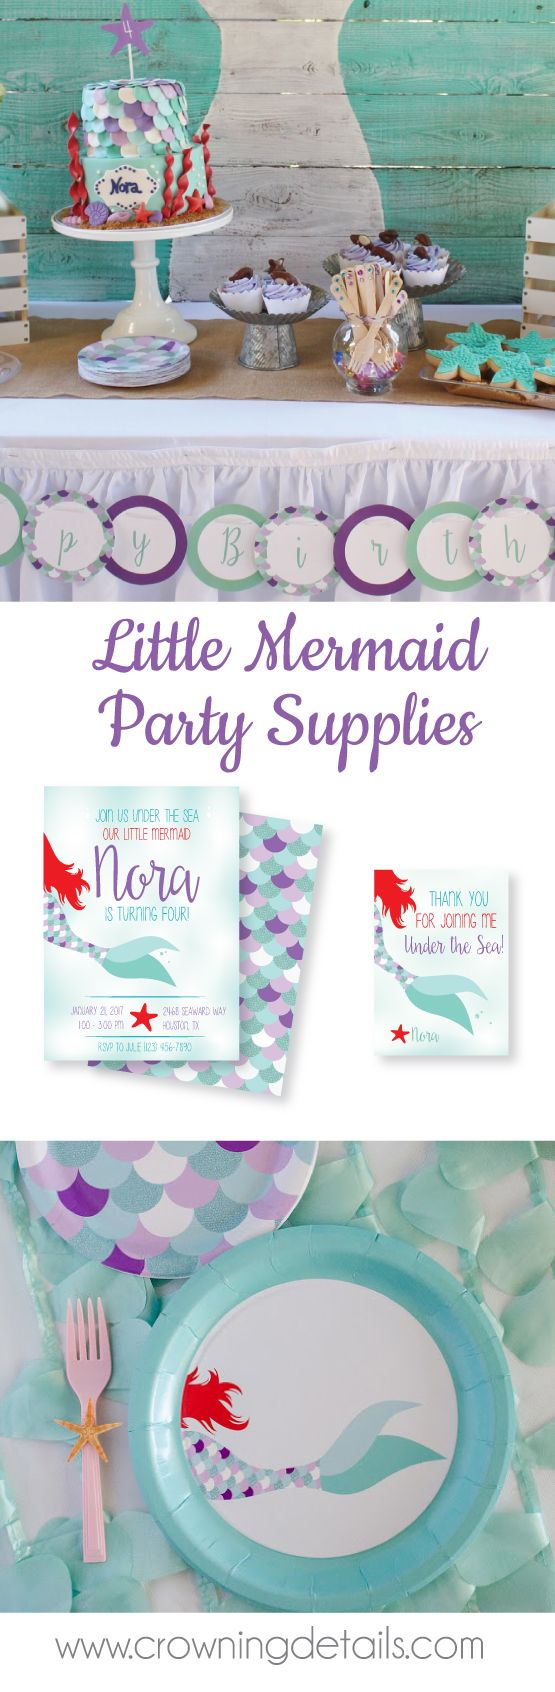 Little Mermaid party supplies for your mermaid birthday party! Shop the entire collection of mermaid tabletop in our online store!